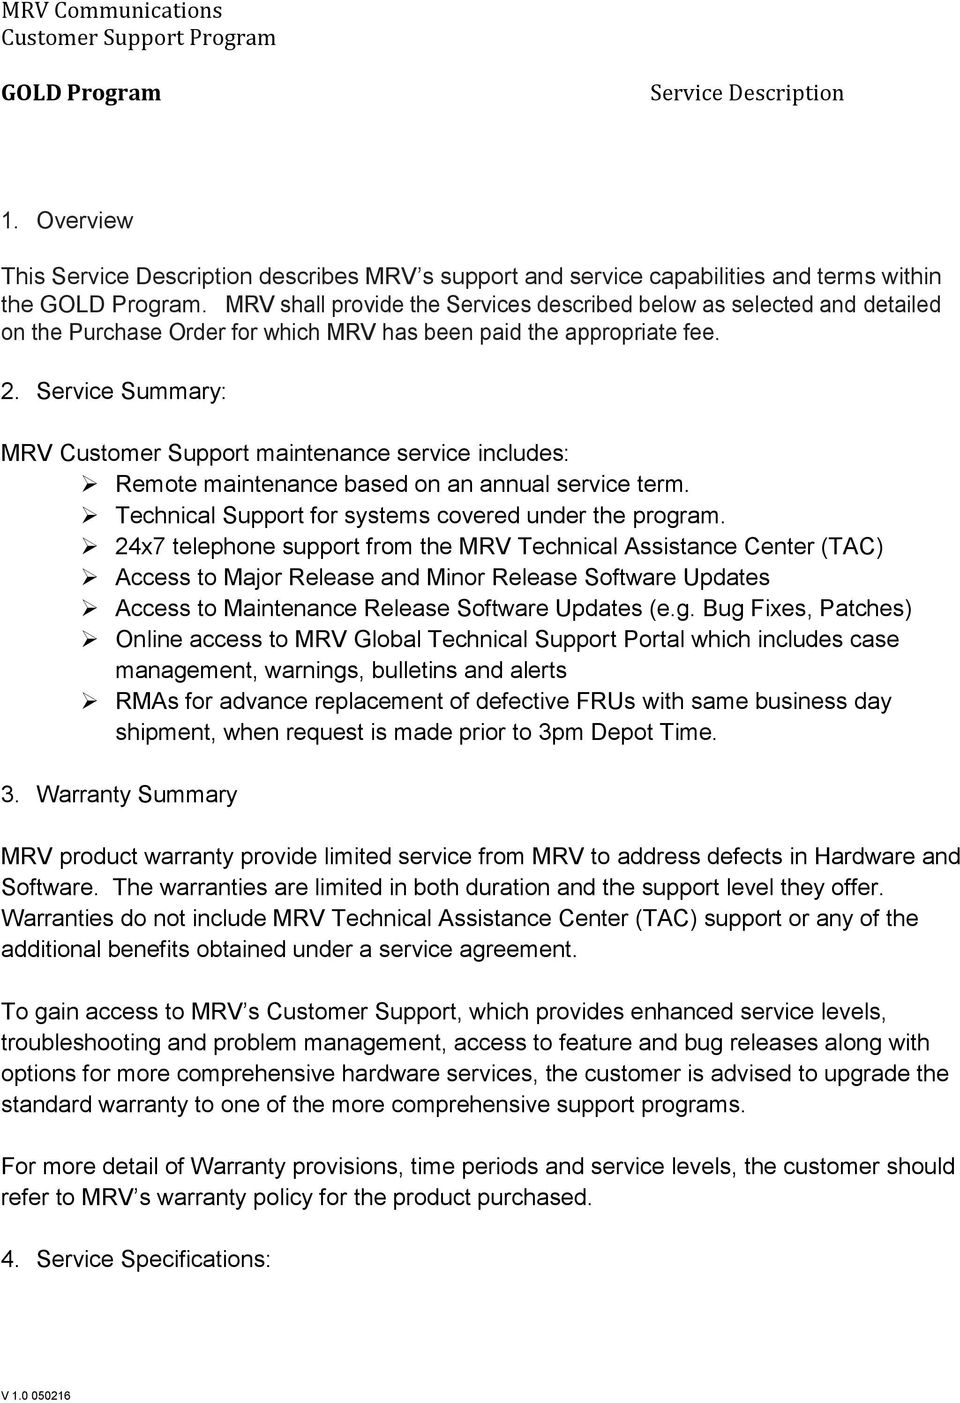 Service Summary: MRV Customer Support maintenance service includes: Remote maintenance based on an annual service term. Technical Support for systems covered under the program.